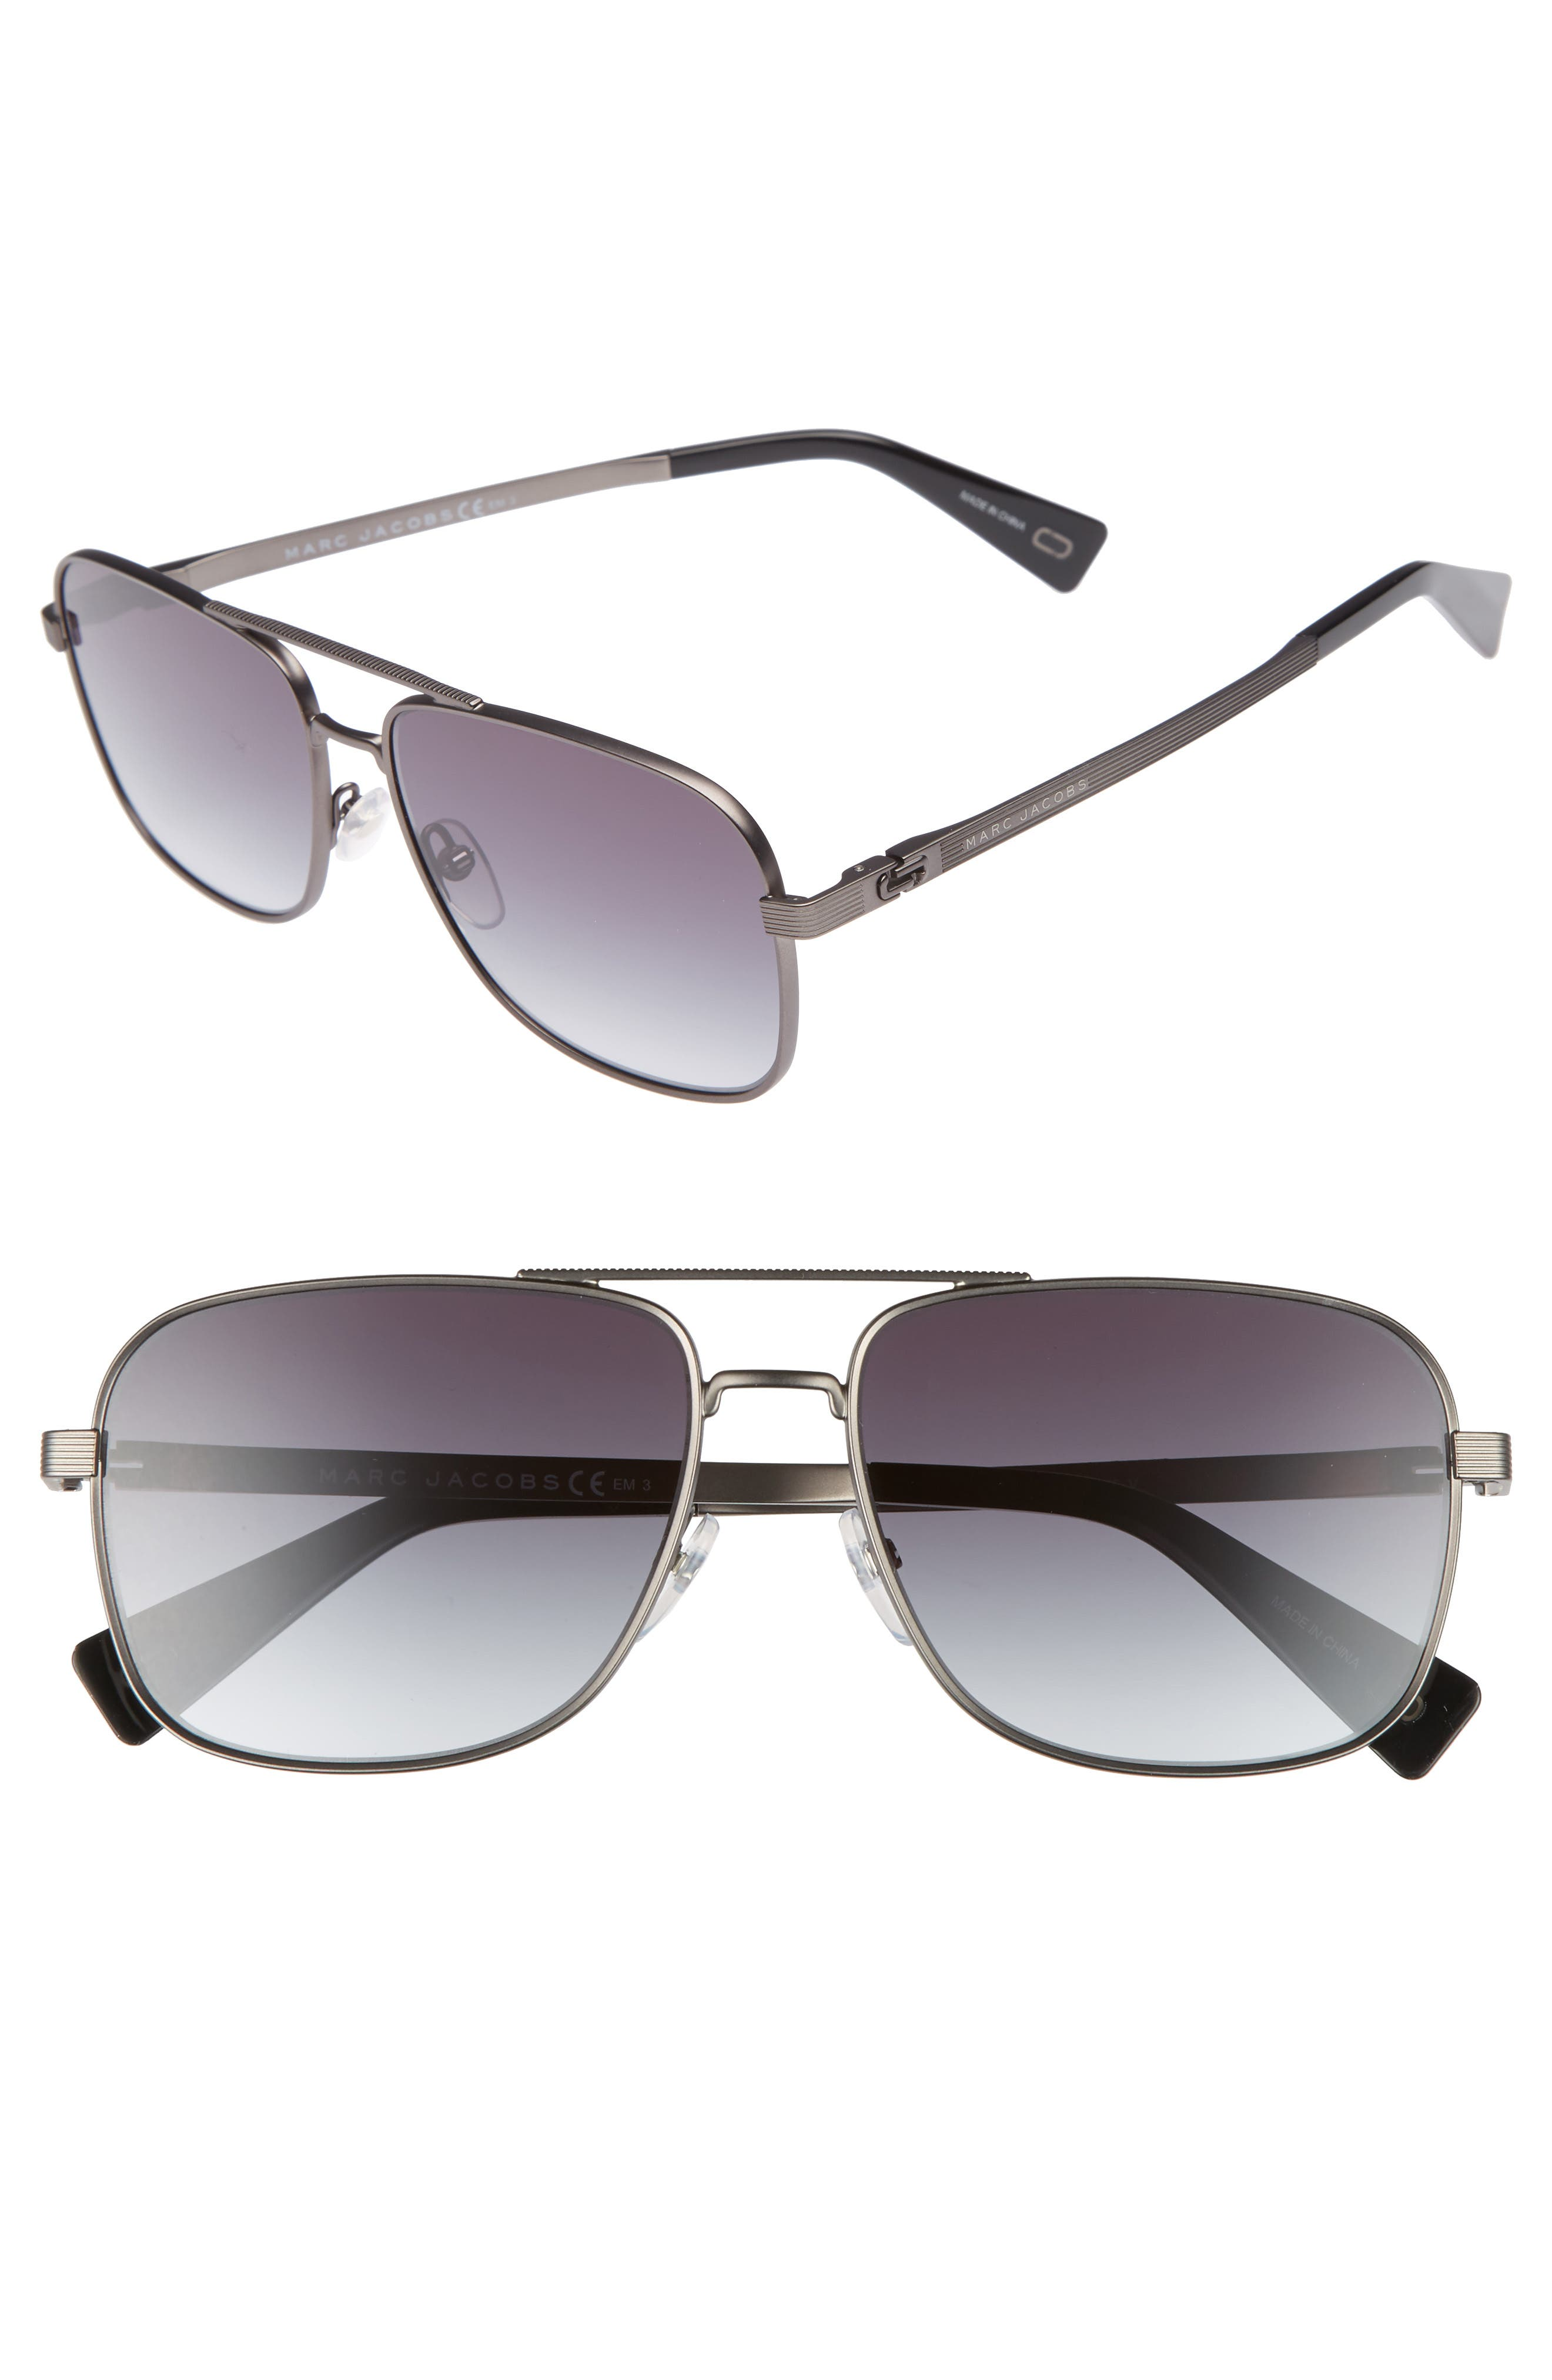 59mm Gradient Navigator Sunglasses,                             Main thumbnail 1, color,                             SEMI MATTE DARK RUTHENIUM